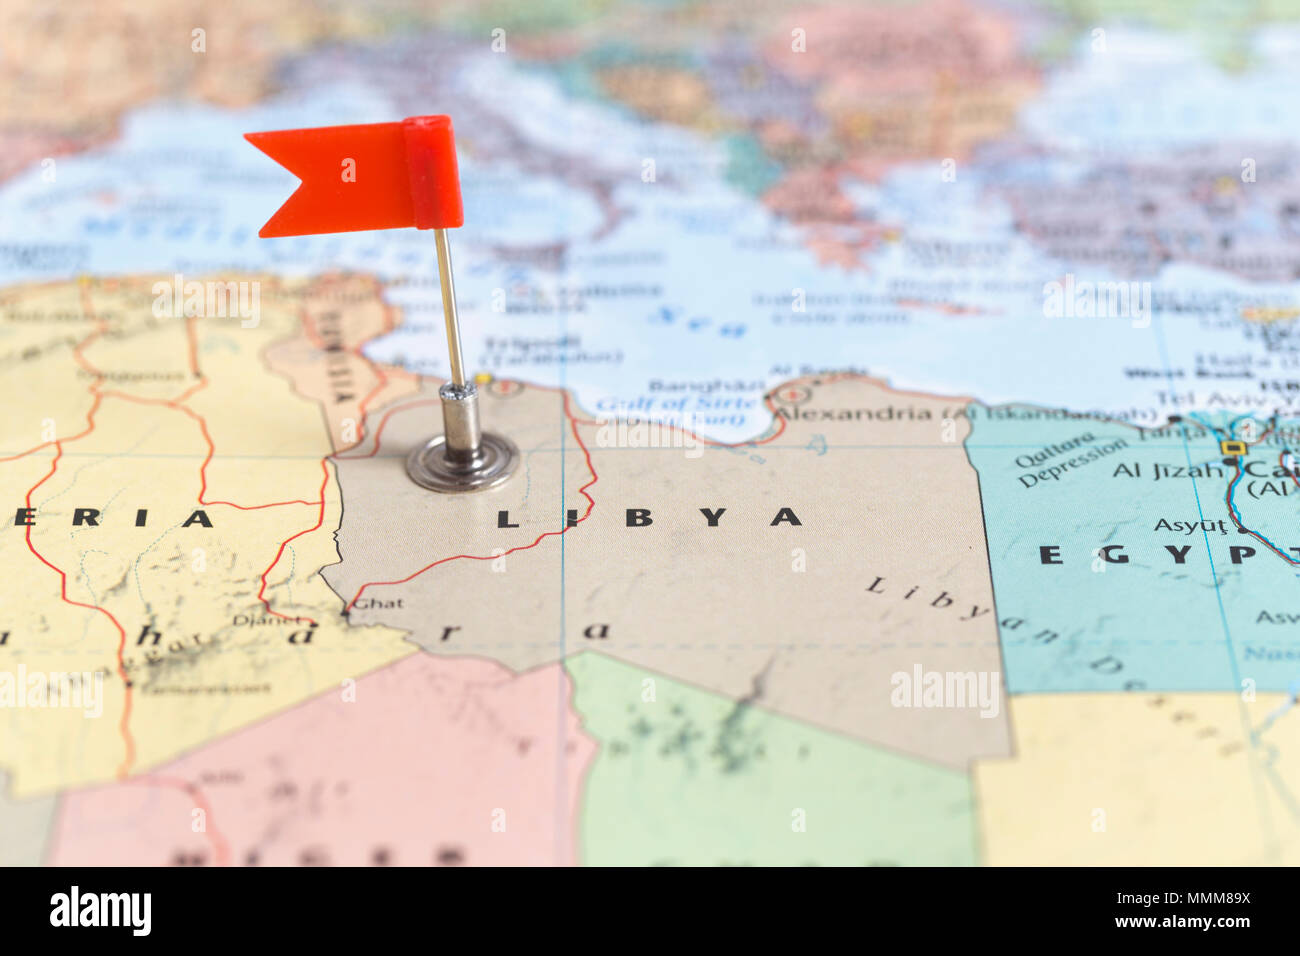 Libya On A World Map.Small Red Flag Marking The African Country Of Libya On A World Map